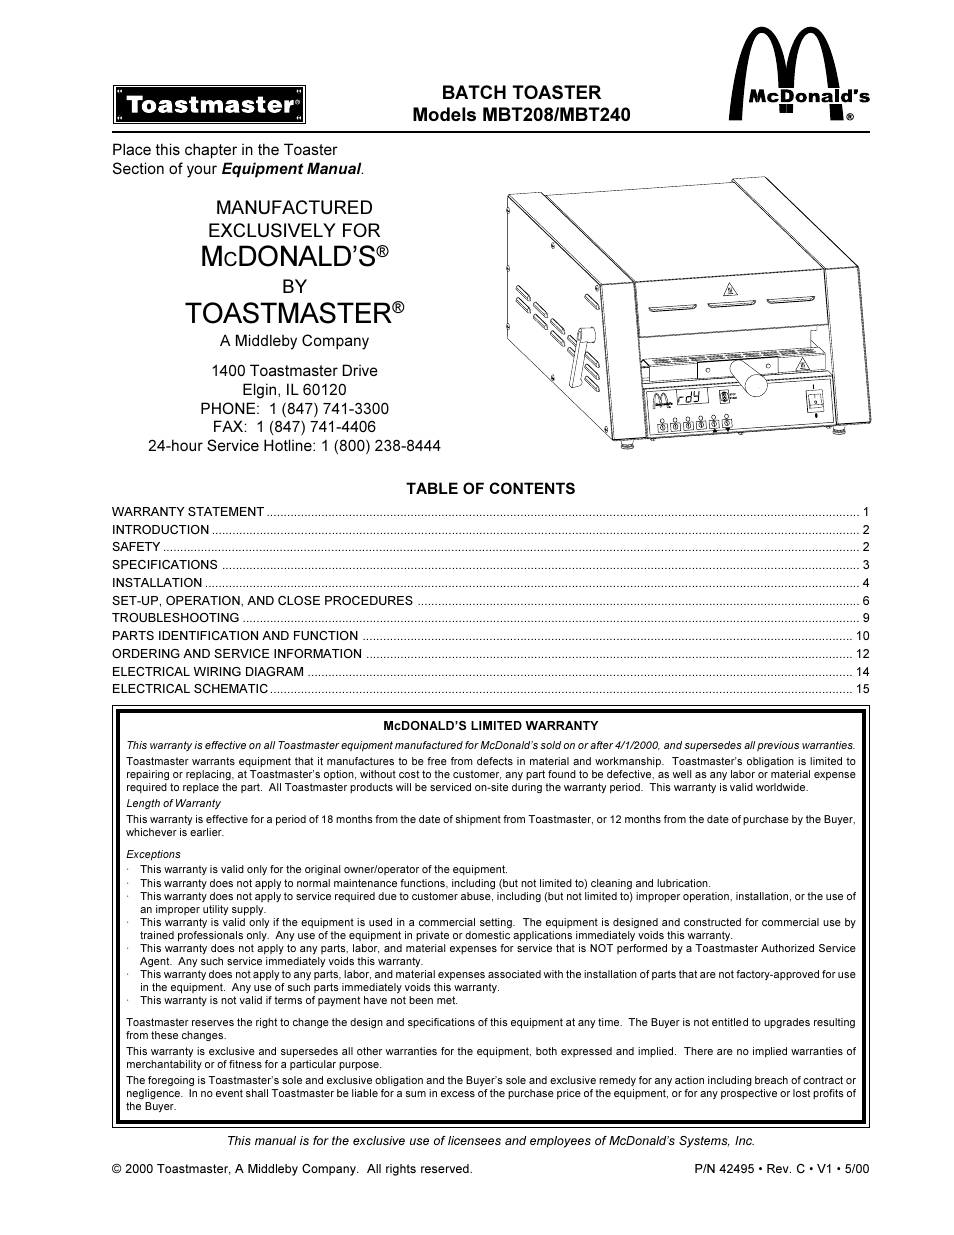 hight resolution of toastmaster mbt240 user manual 16 pagestoastmaster wiring diagram 15